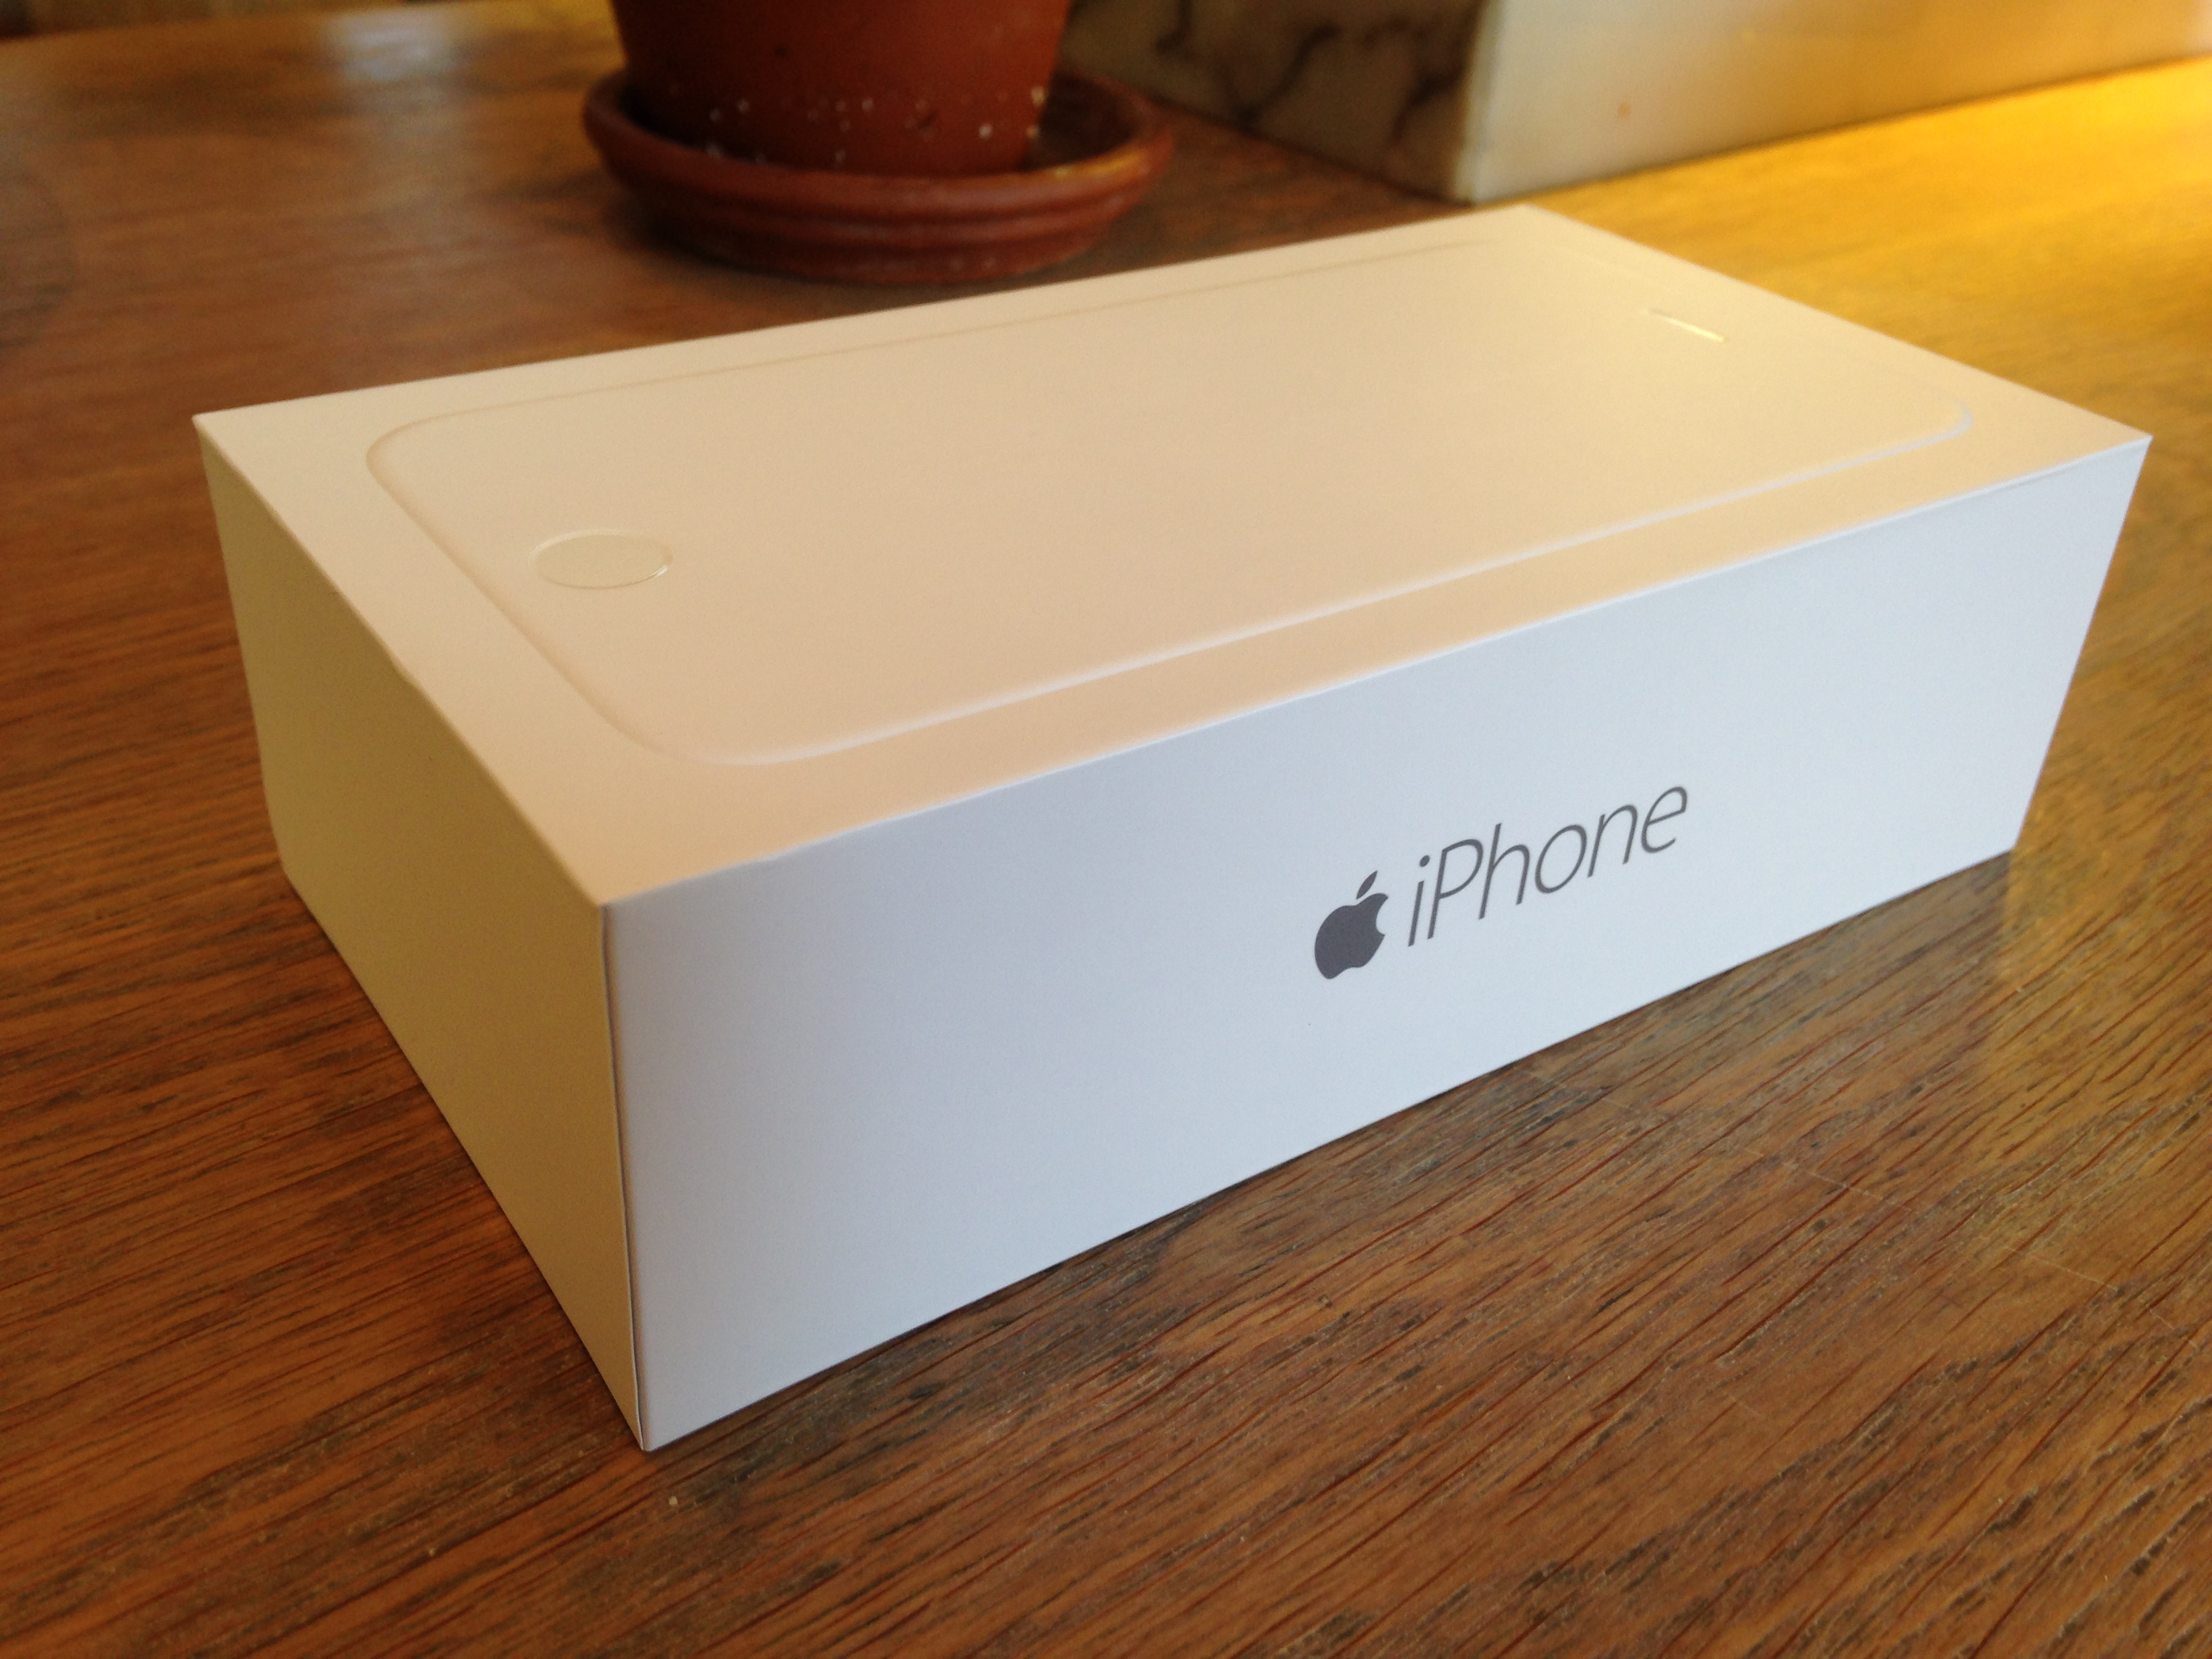 iphone-6-box.jpg